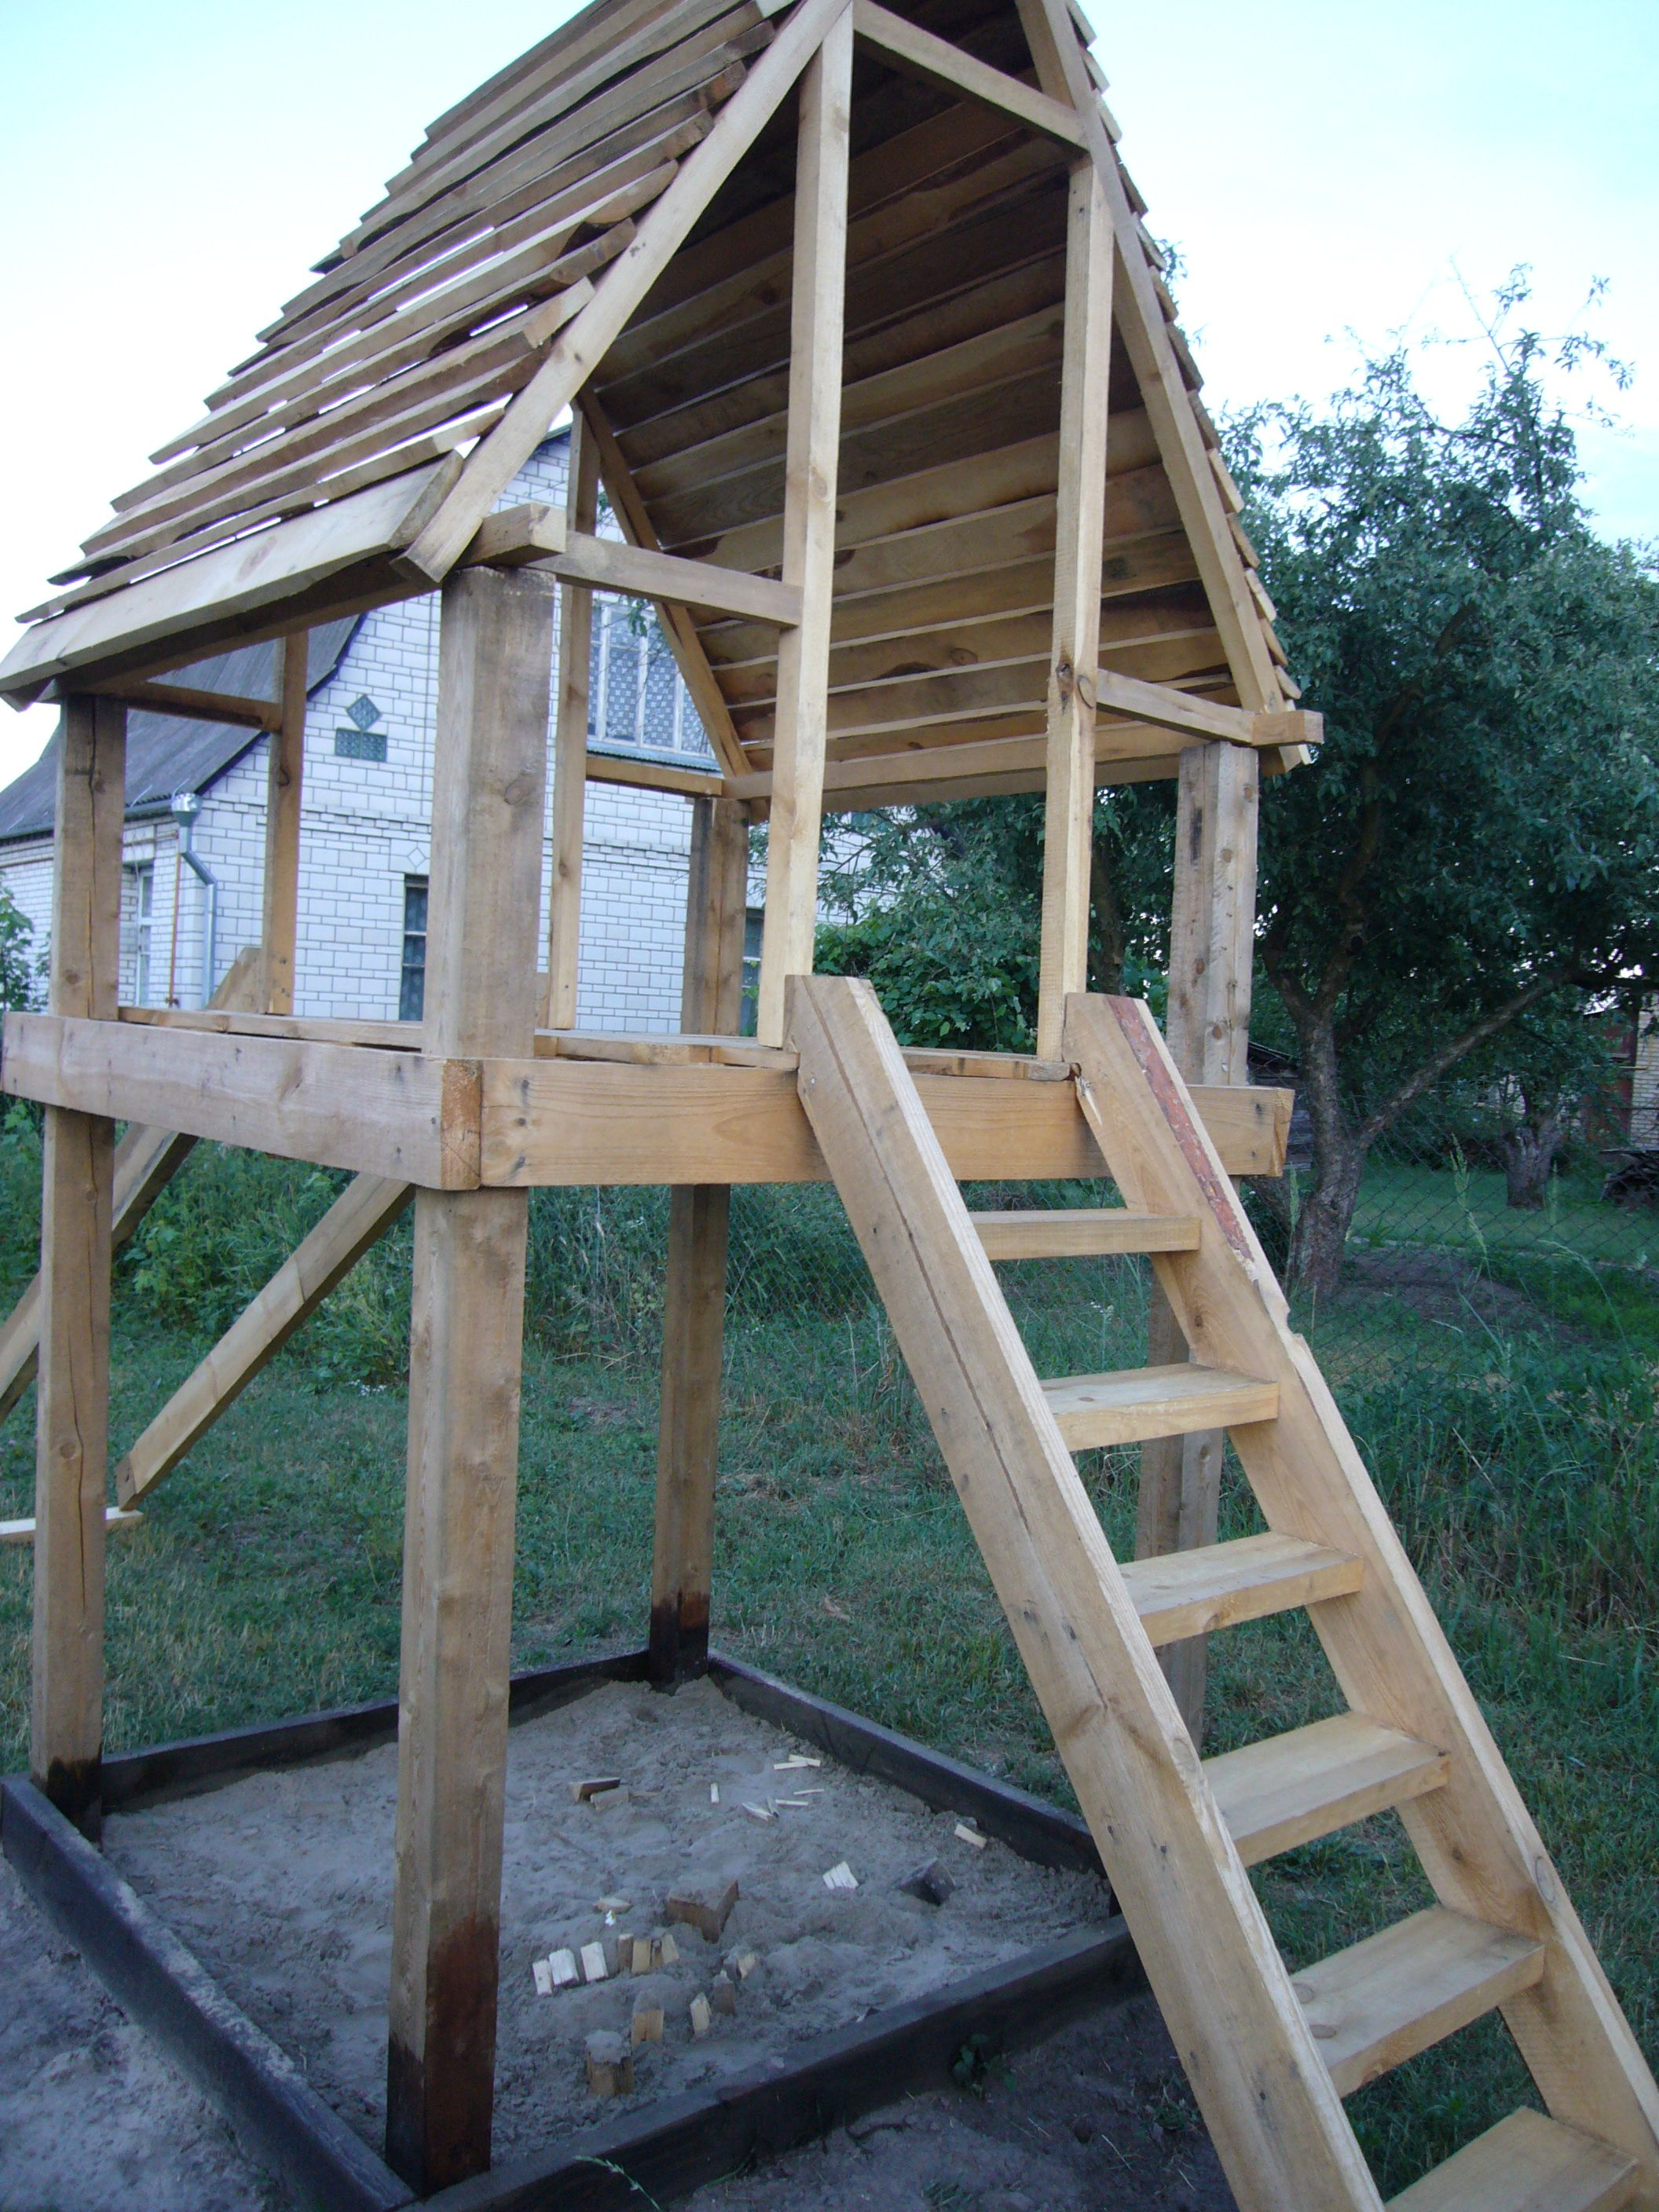 Diy project playhouse with slide wood playhouse for Simple outdoor playhouse plans